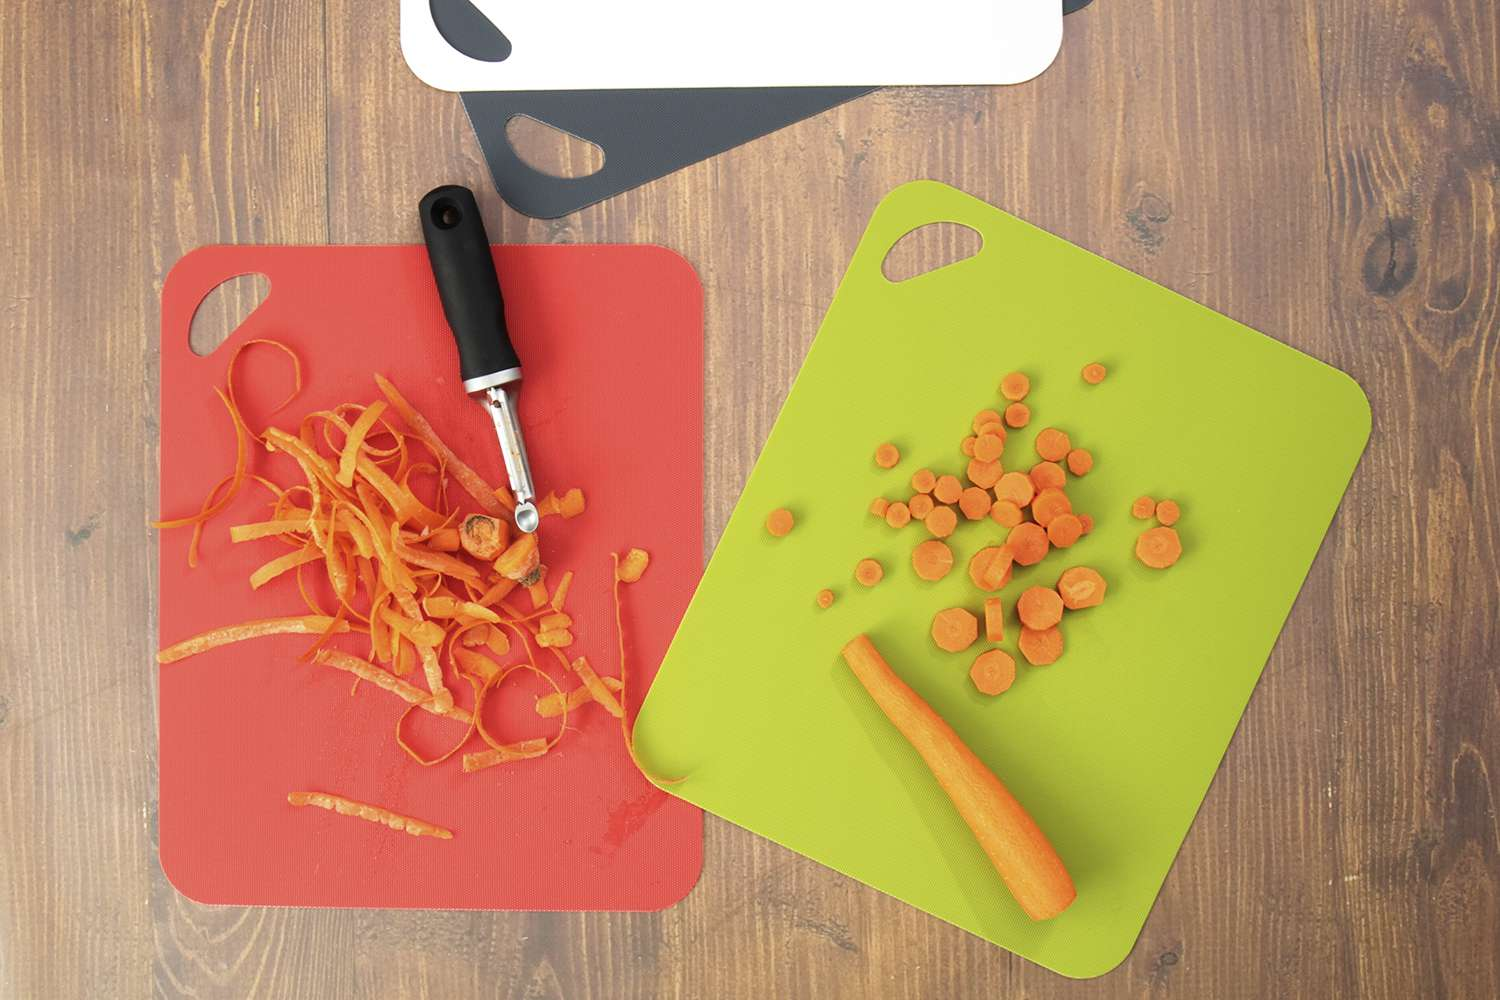 STGA Flexible Board Grade Plastic Kitchen Cutting Mat with Food Icons Set of 4,